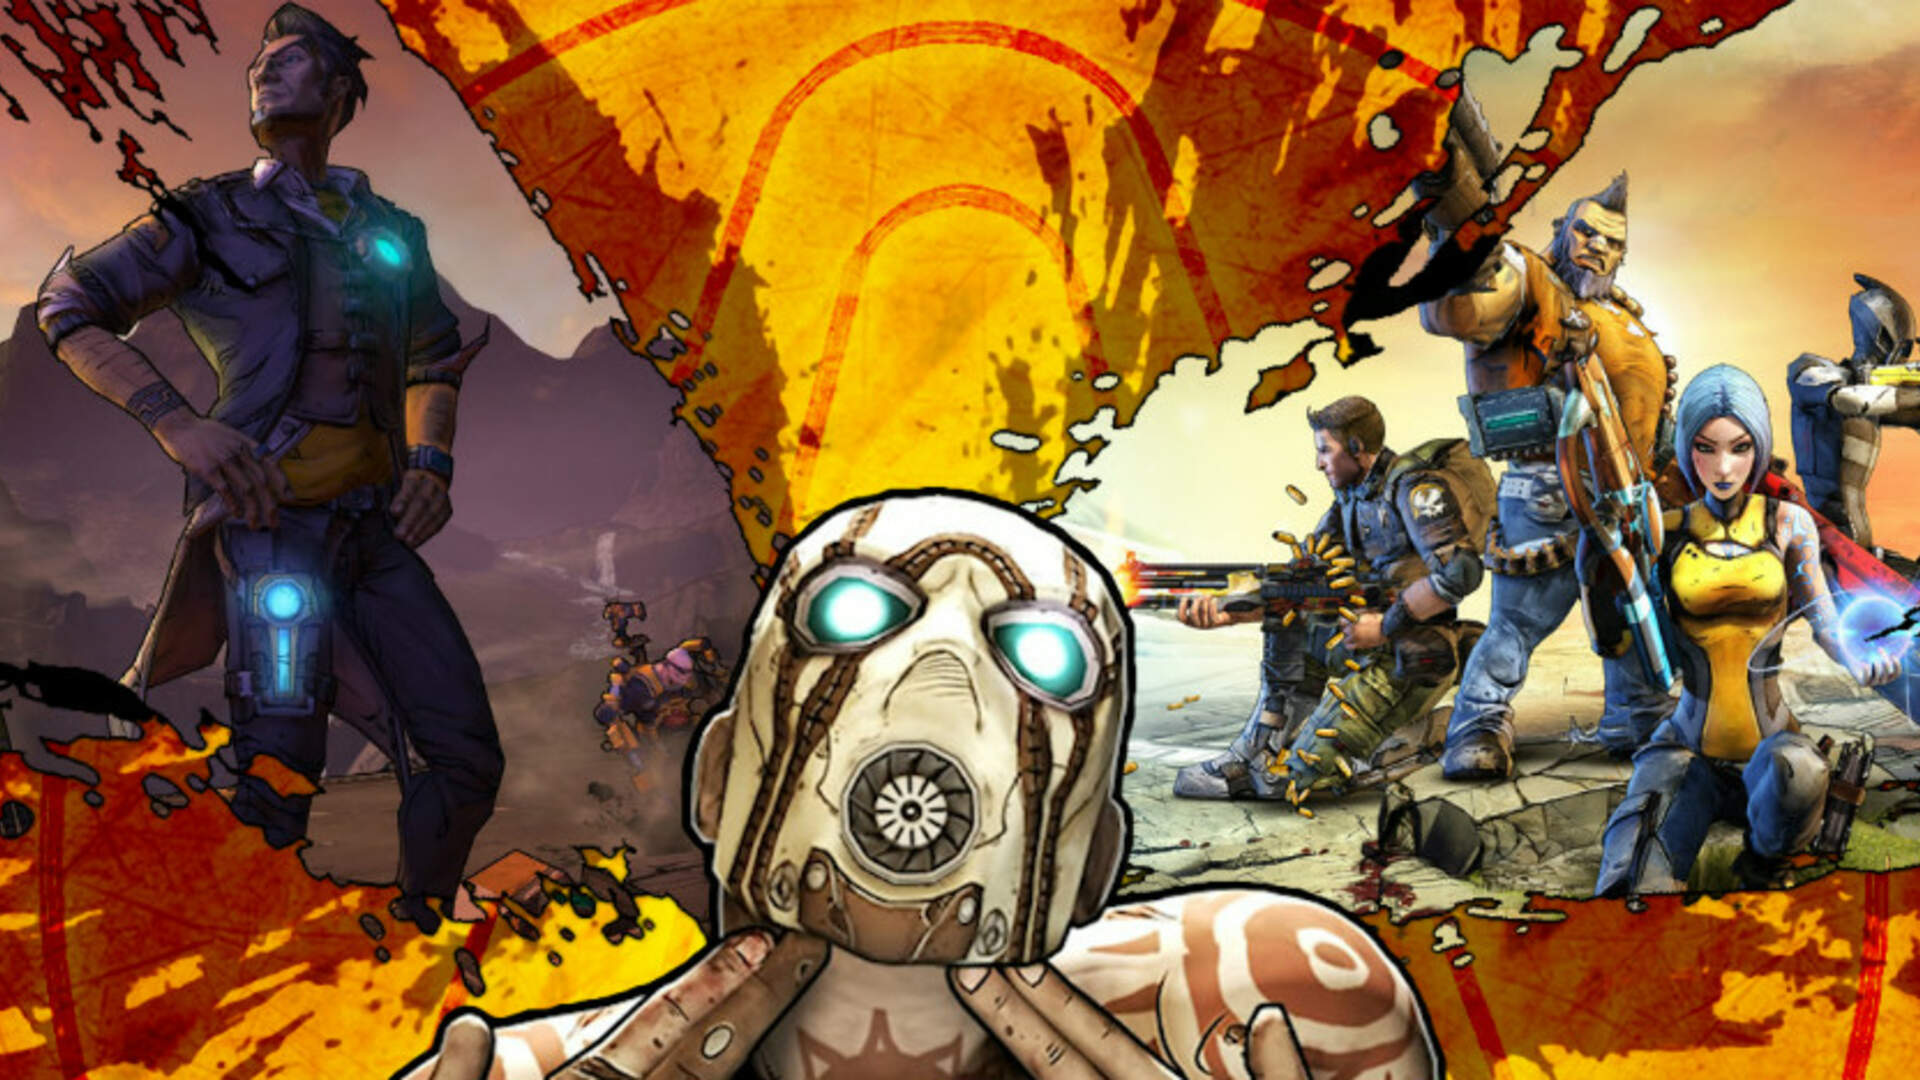 """Take Two Delays a """"Highly Anticipated Title"""" to 2020, Probably Borderlands 3"""